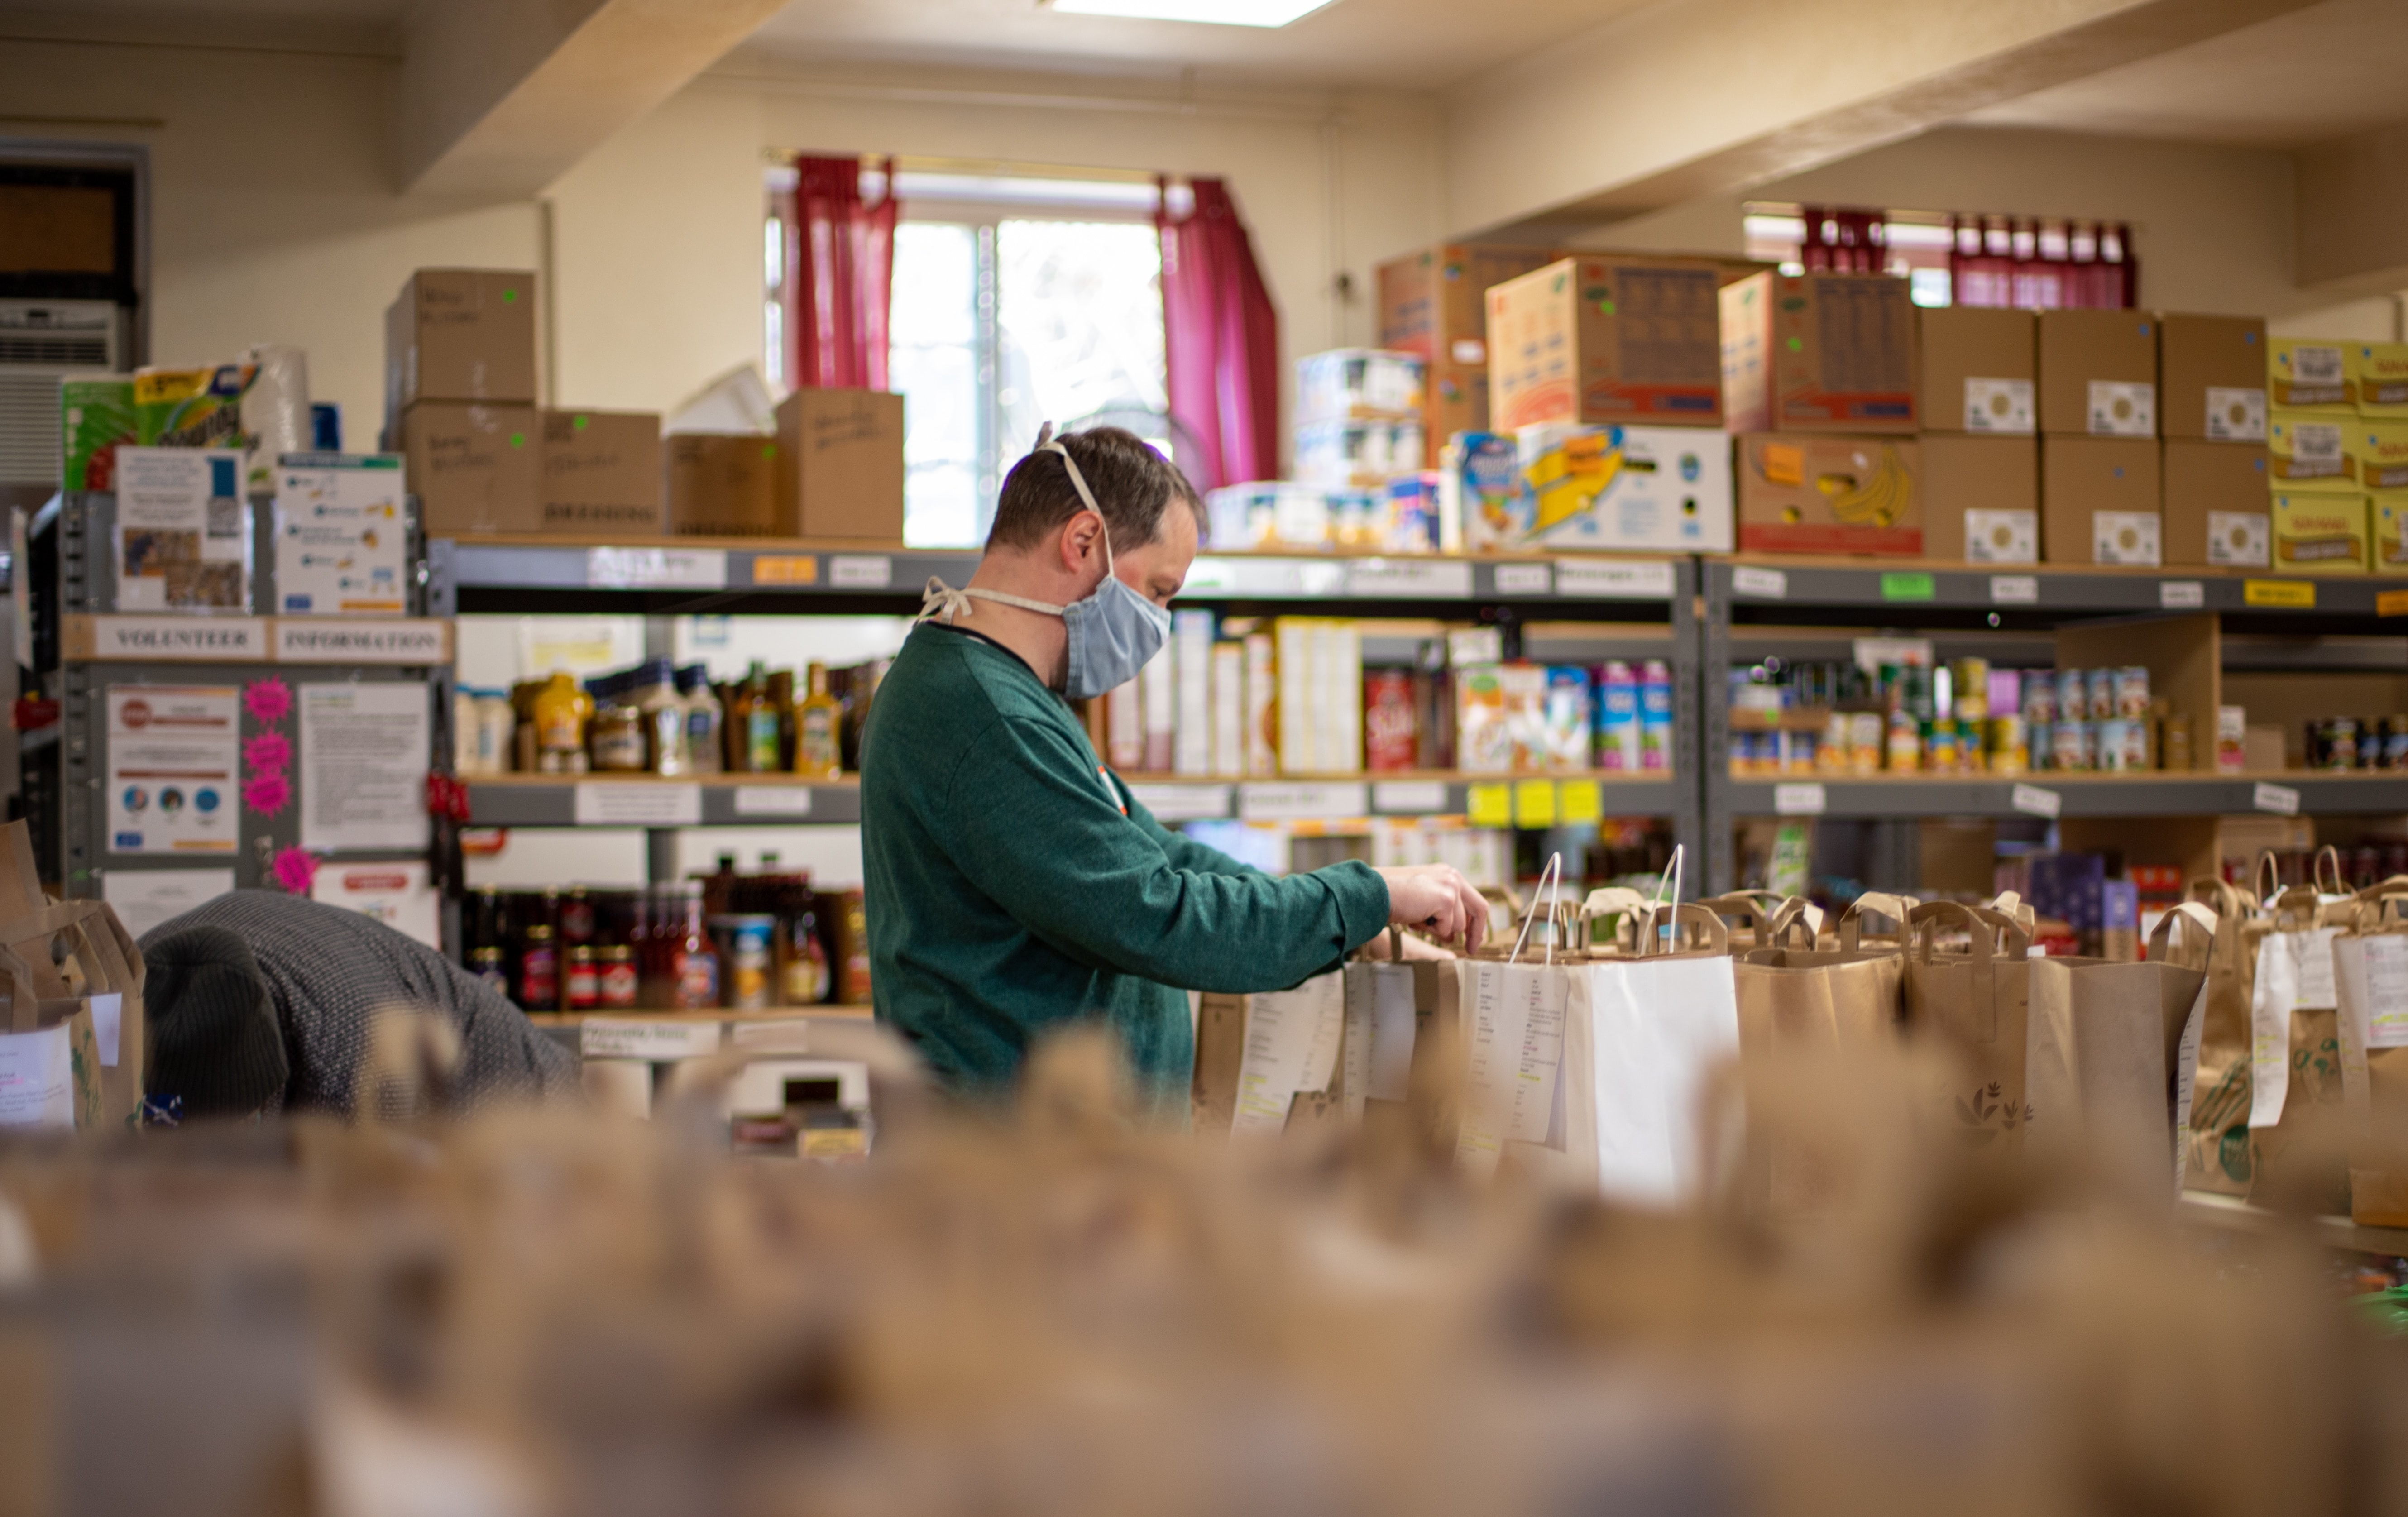 A person wearing a mask fills bags in a food bank